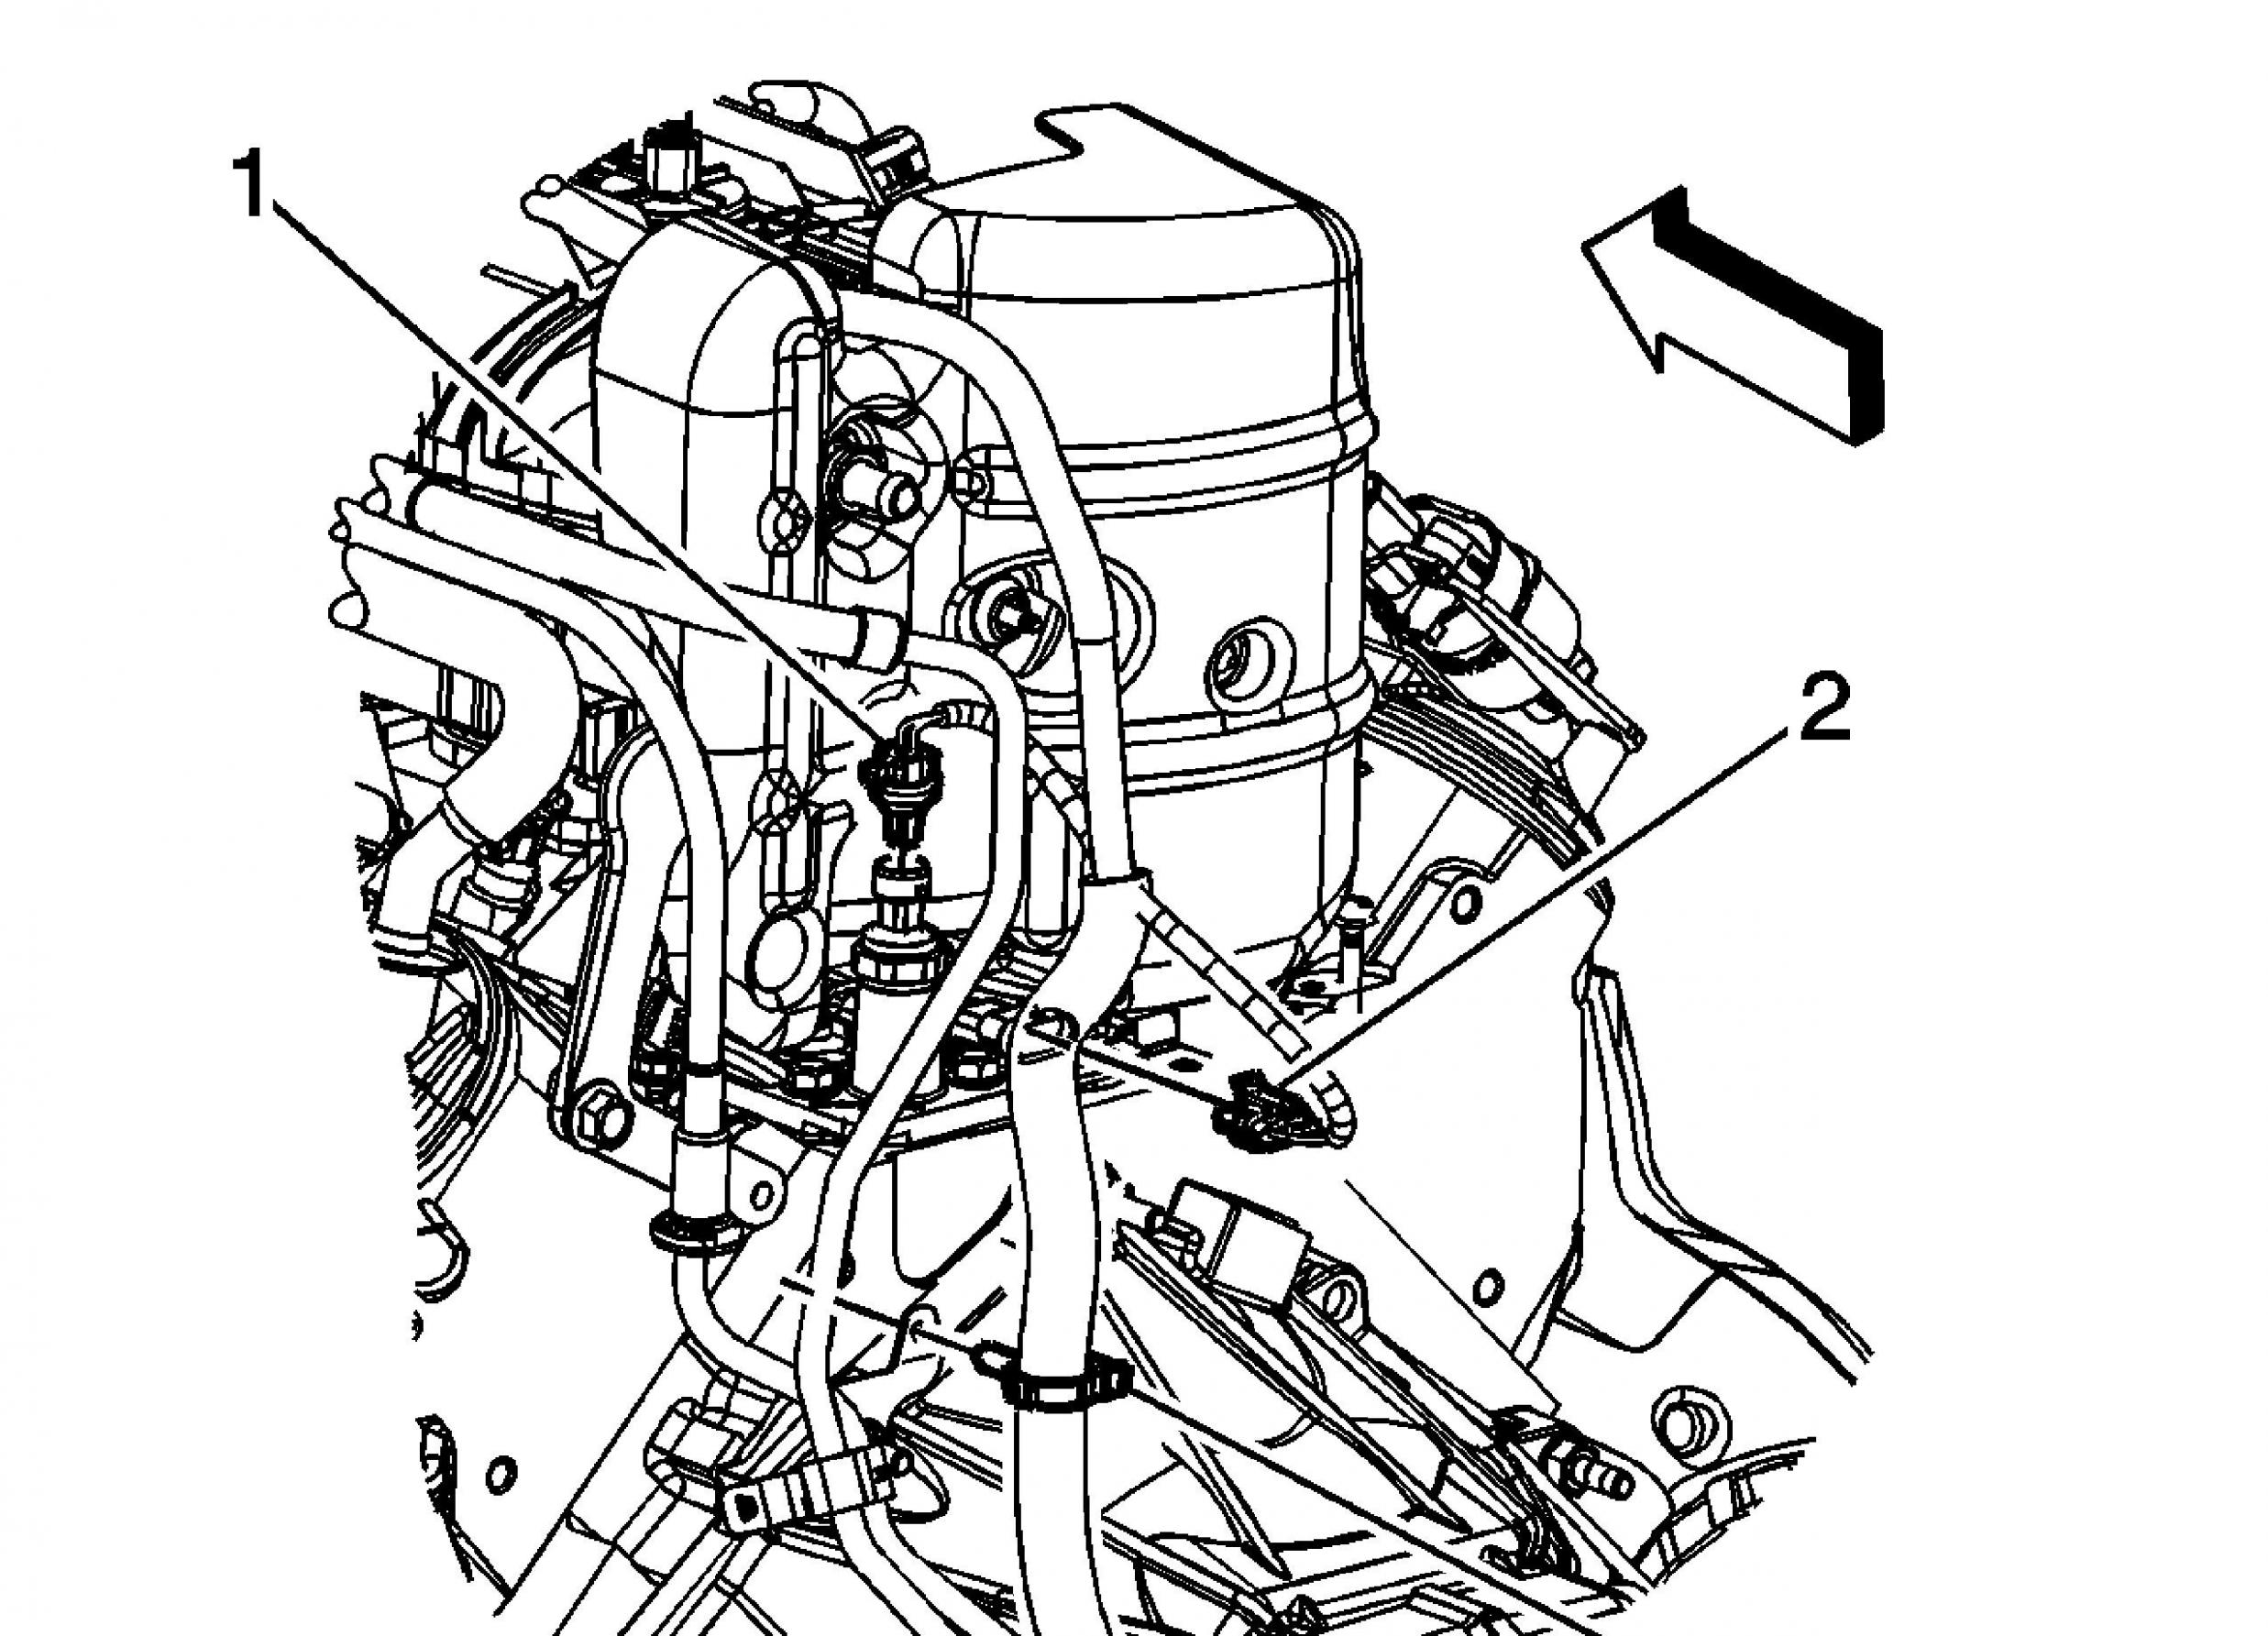 Chevy Equinox Fuel Filter Location